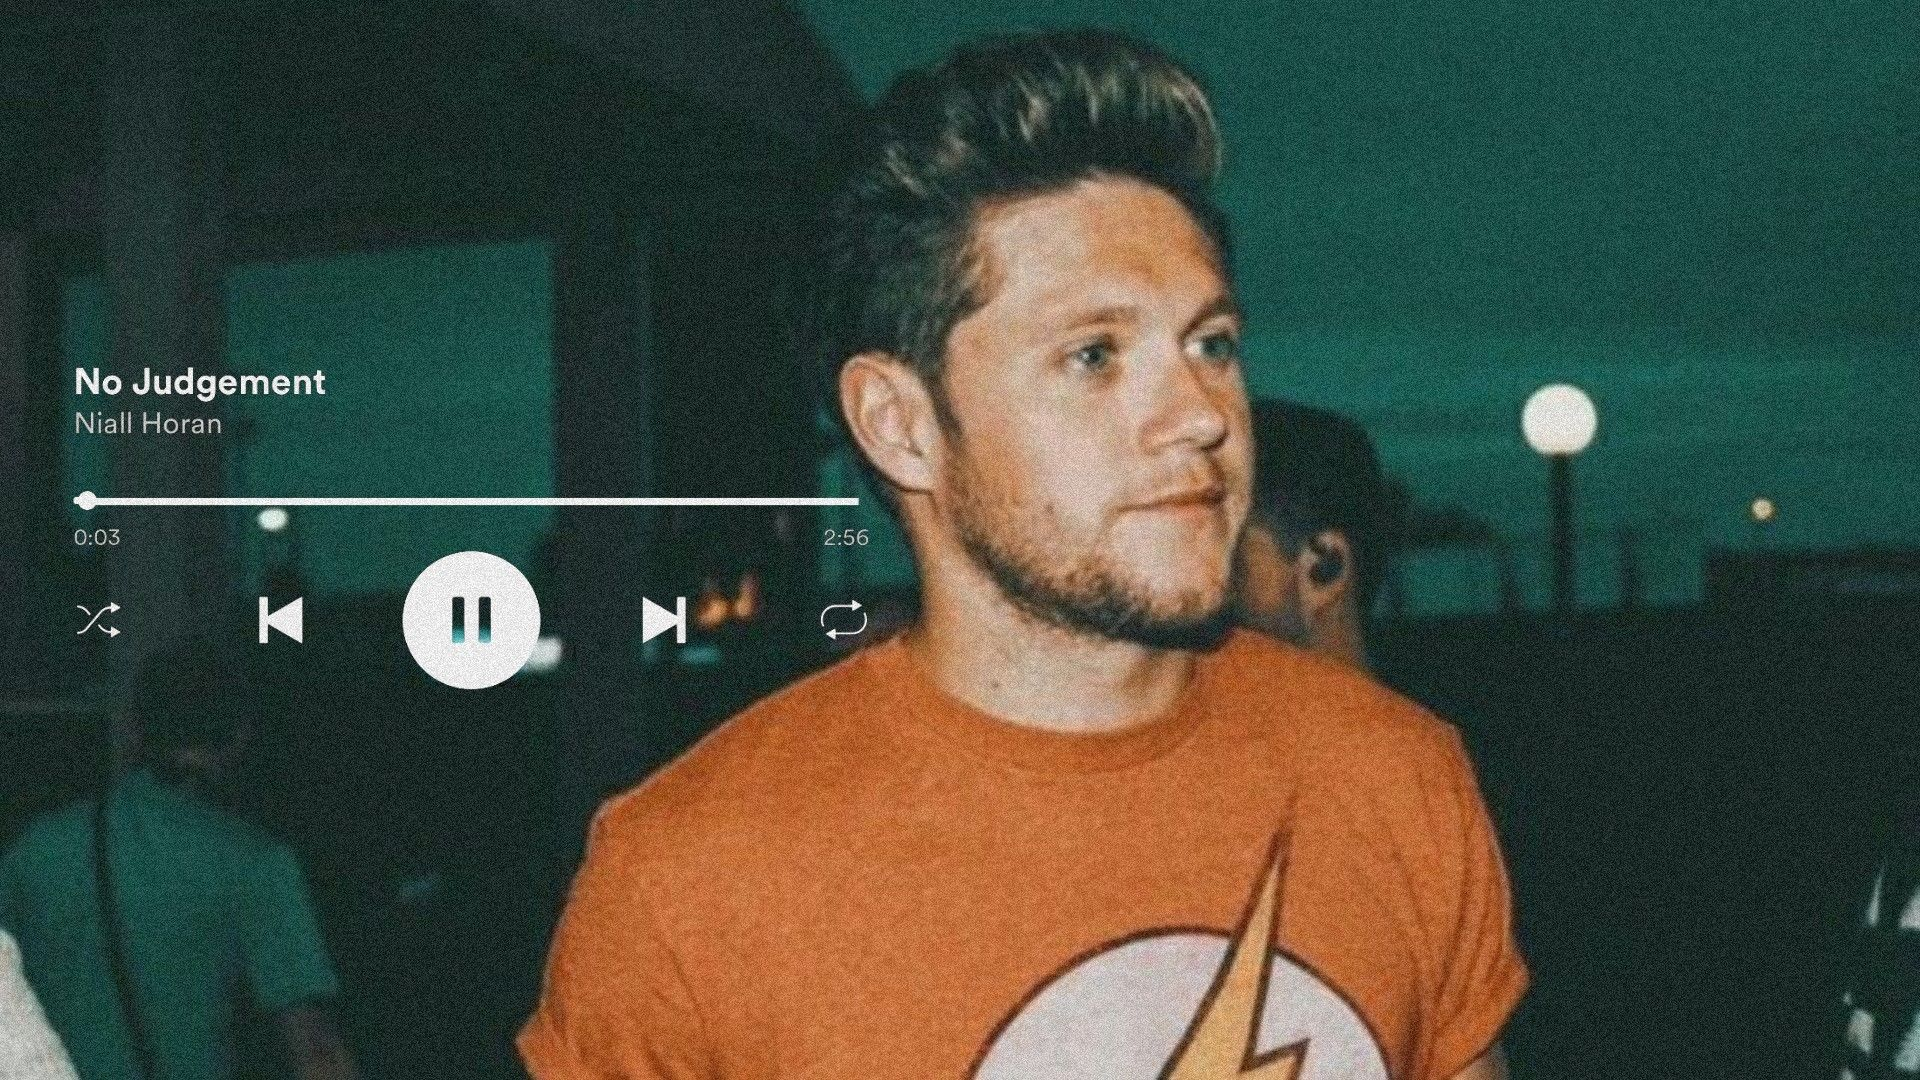 Niall horan wallpaper pc in 2020 | One direction wallpaper ...